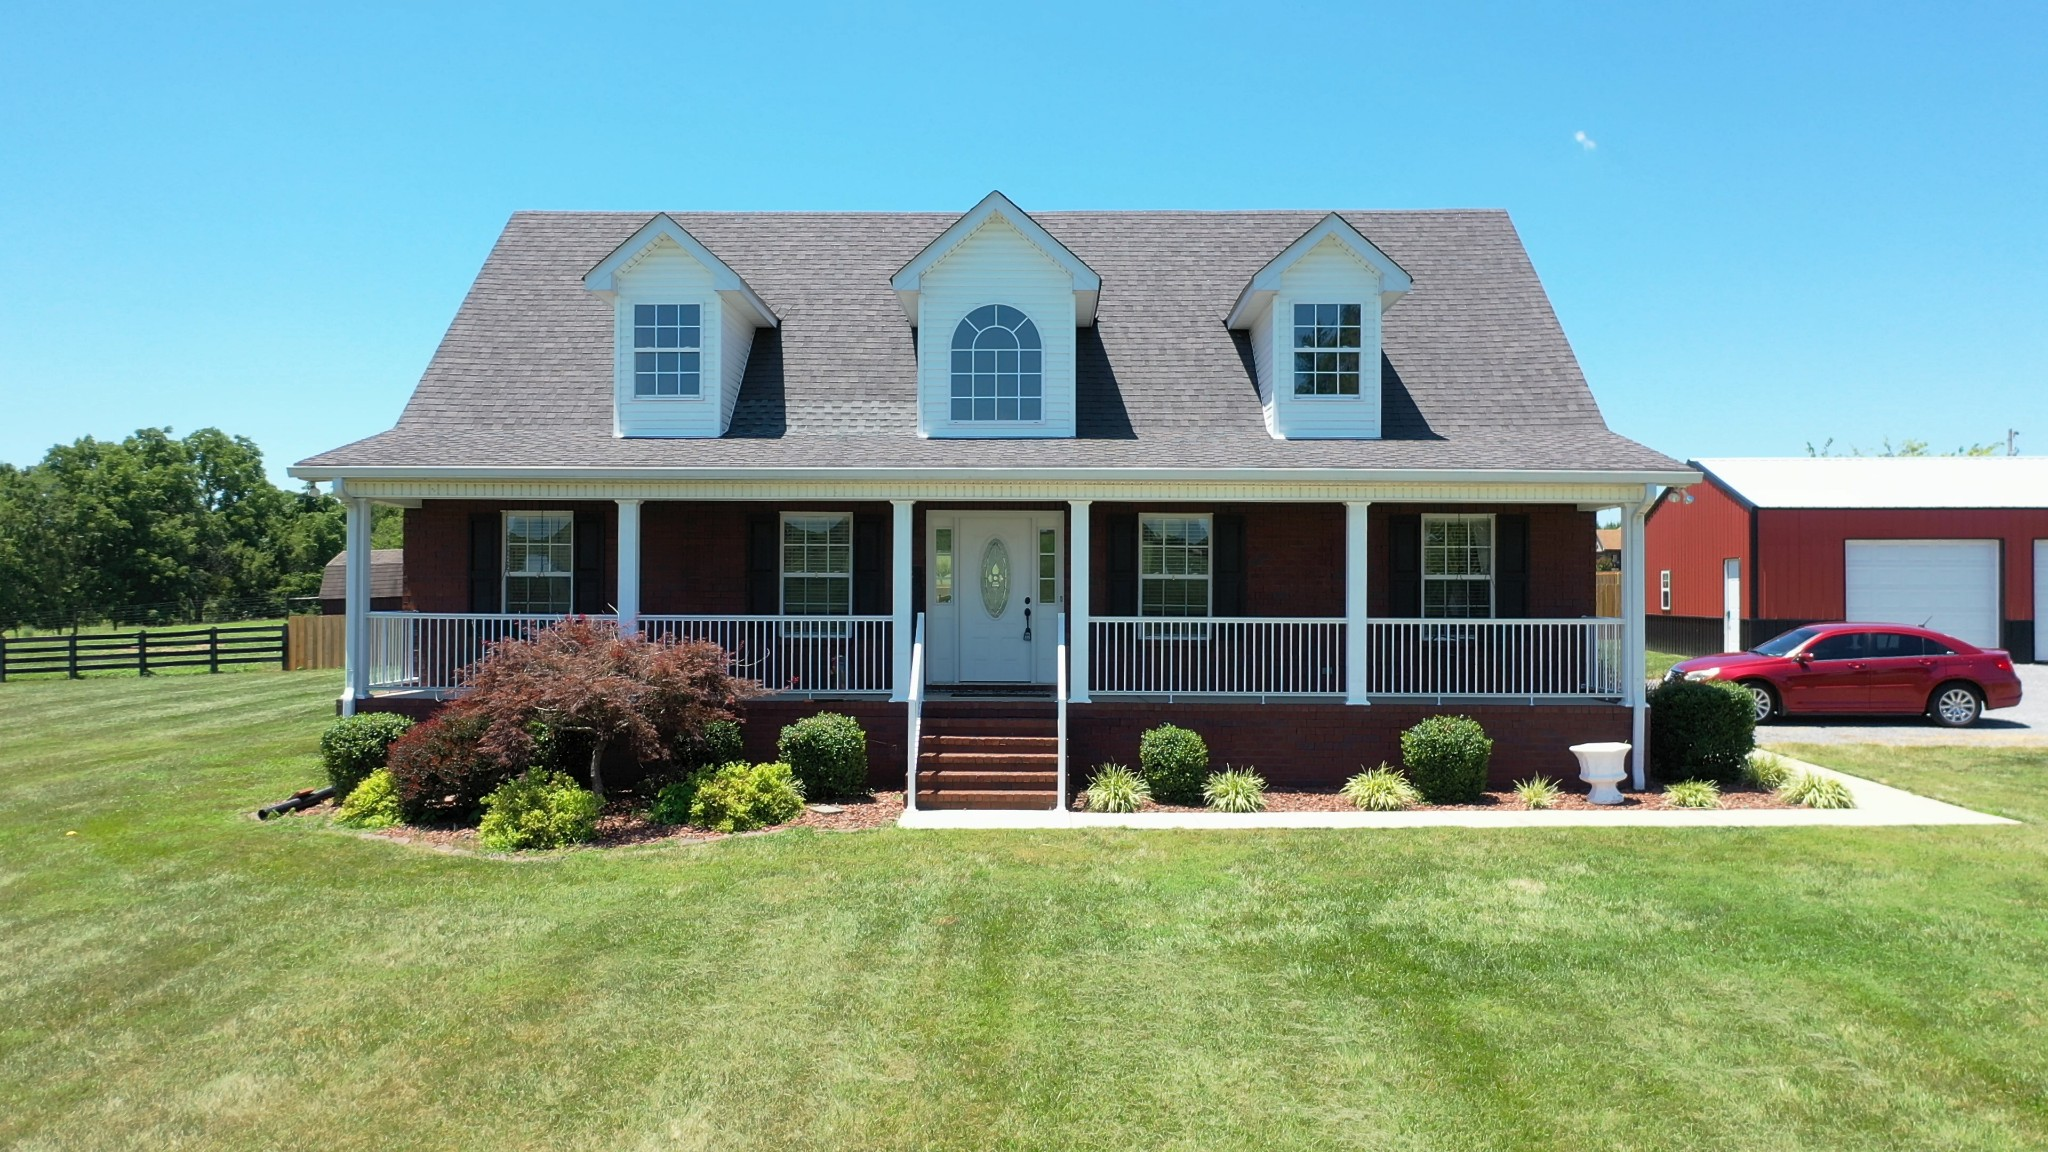 172 Clanton Ln Property Photo - Wartrace, TN real estate listing